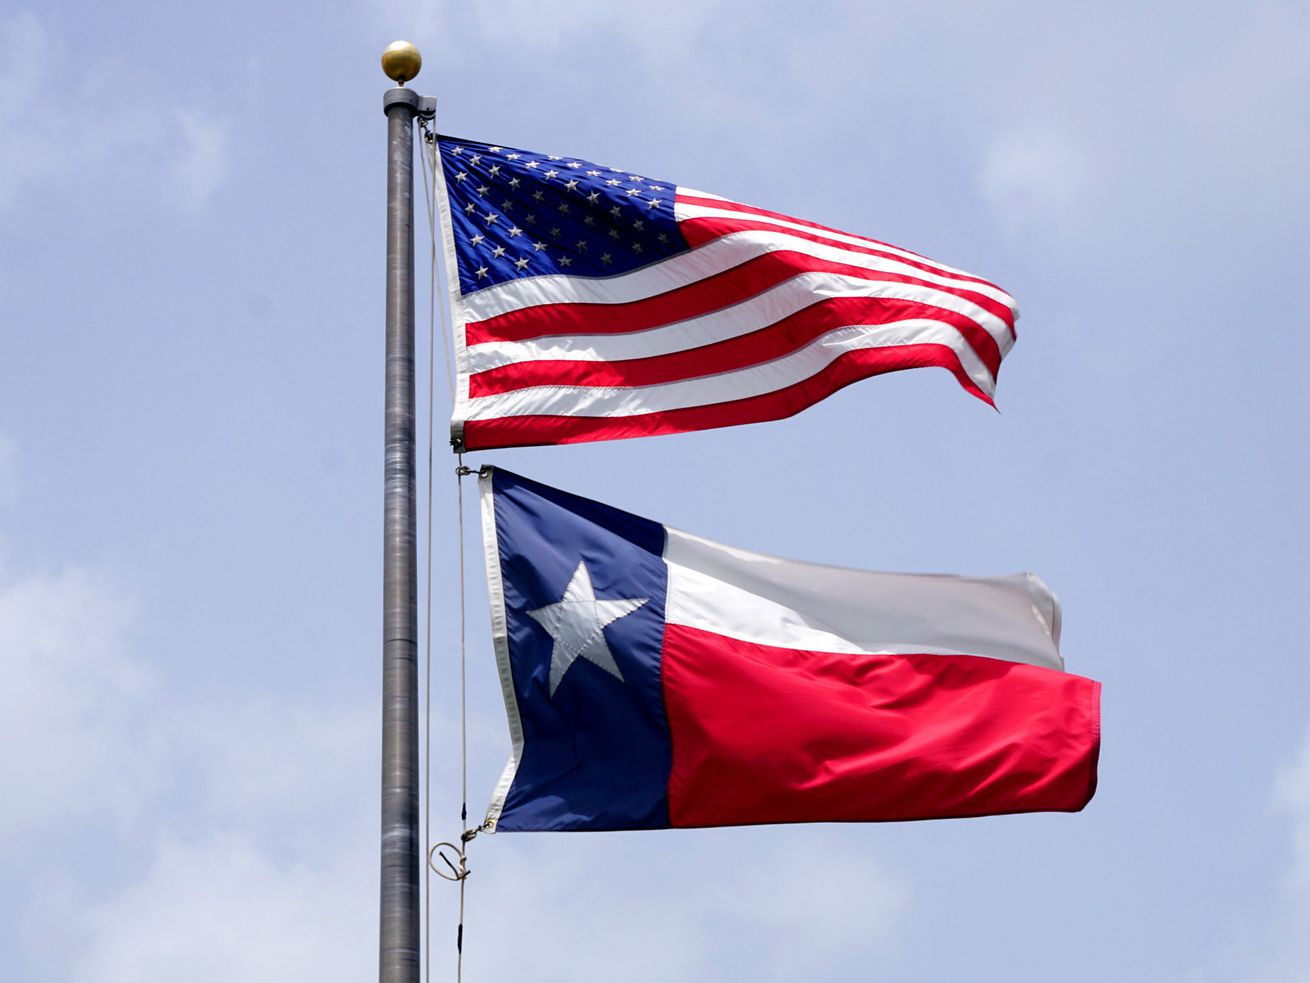 The state flag of Texas is shown beneath the flag of the United States.